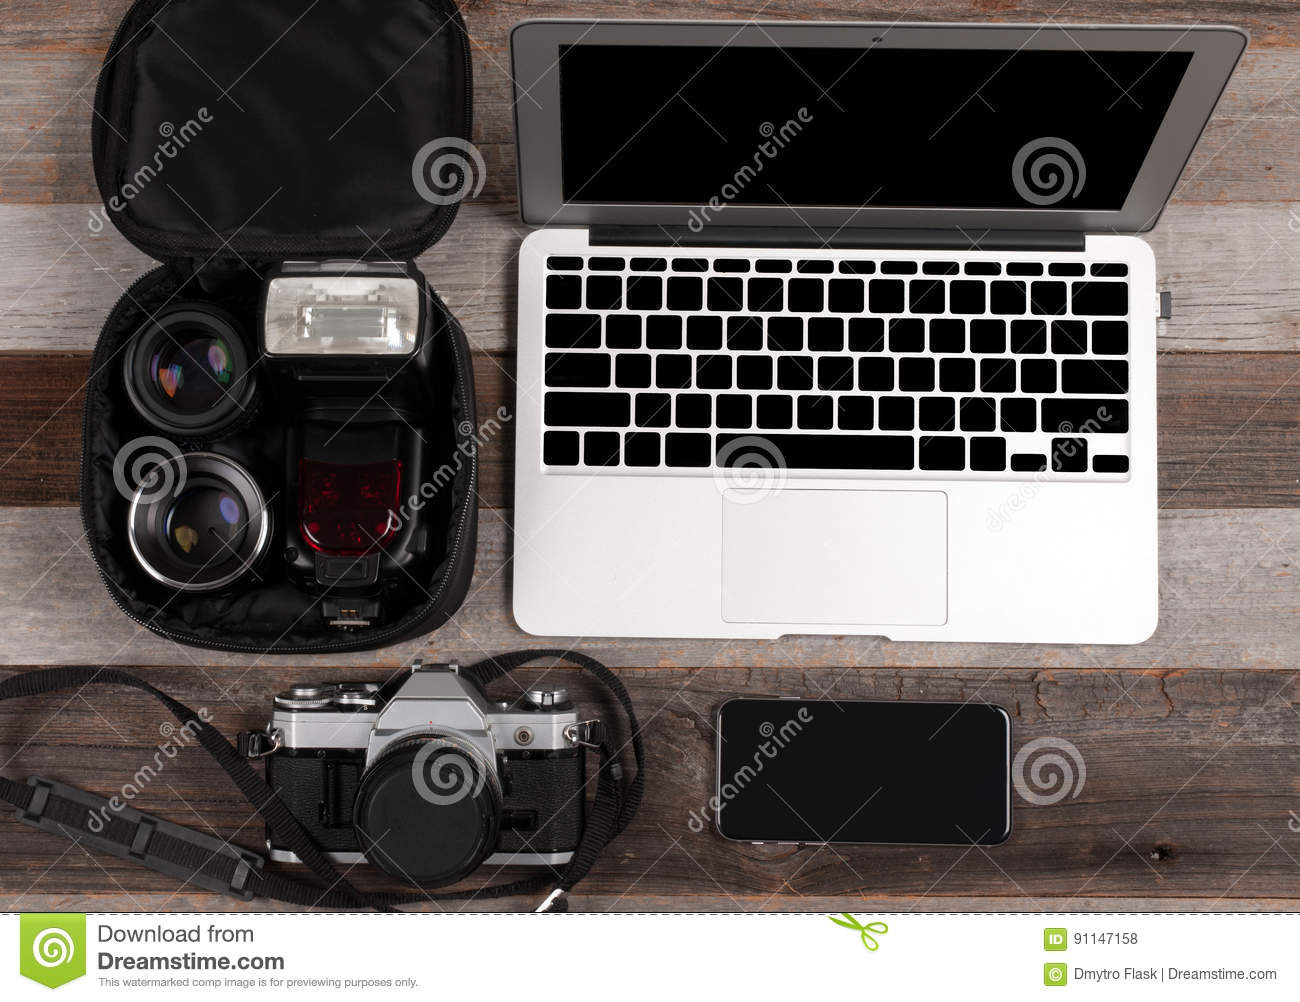 Laptop Smart Phone Photo Camera And Headset On Wooden Background Stock Photo Image Of Photographing Organizer 91147158